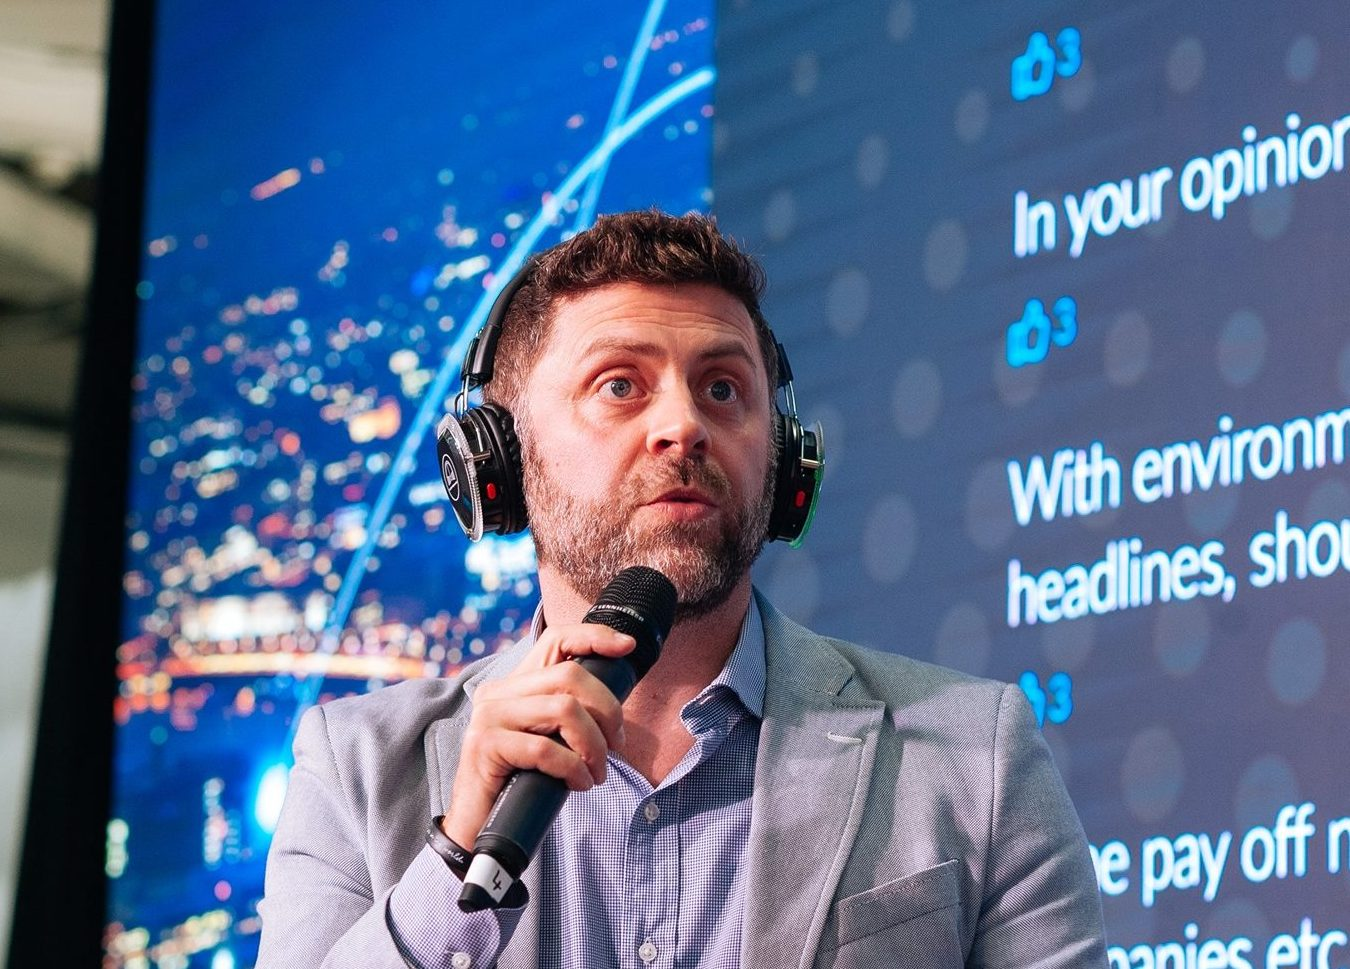 Headsets for Seminars, Events, Conferences and Exhibitions